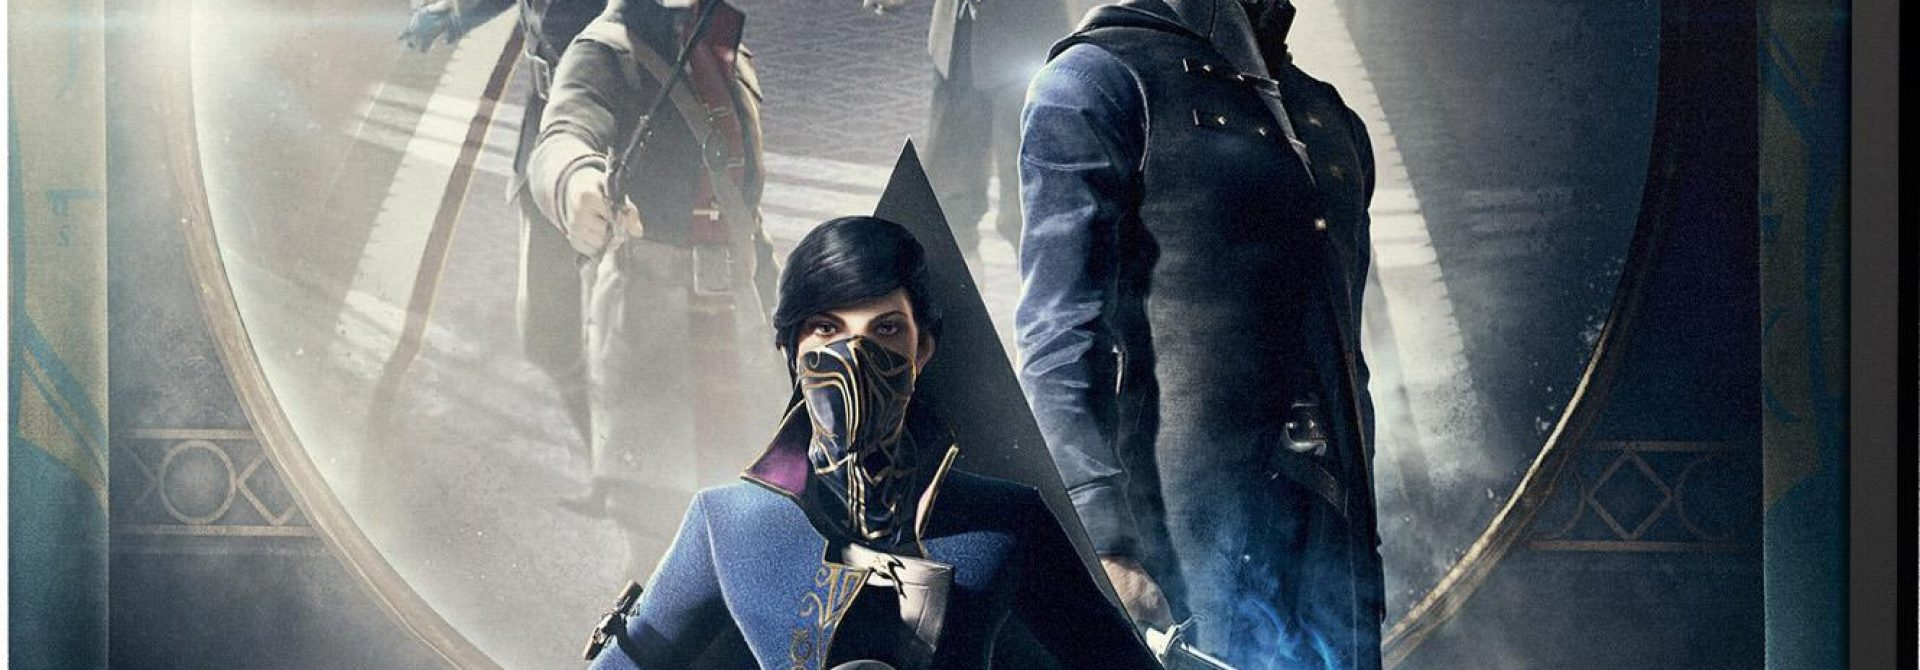 Dishonored Tabletop Game Coming This Summer